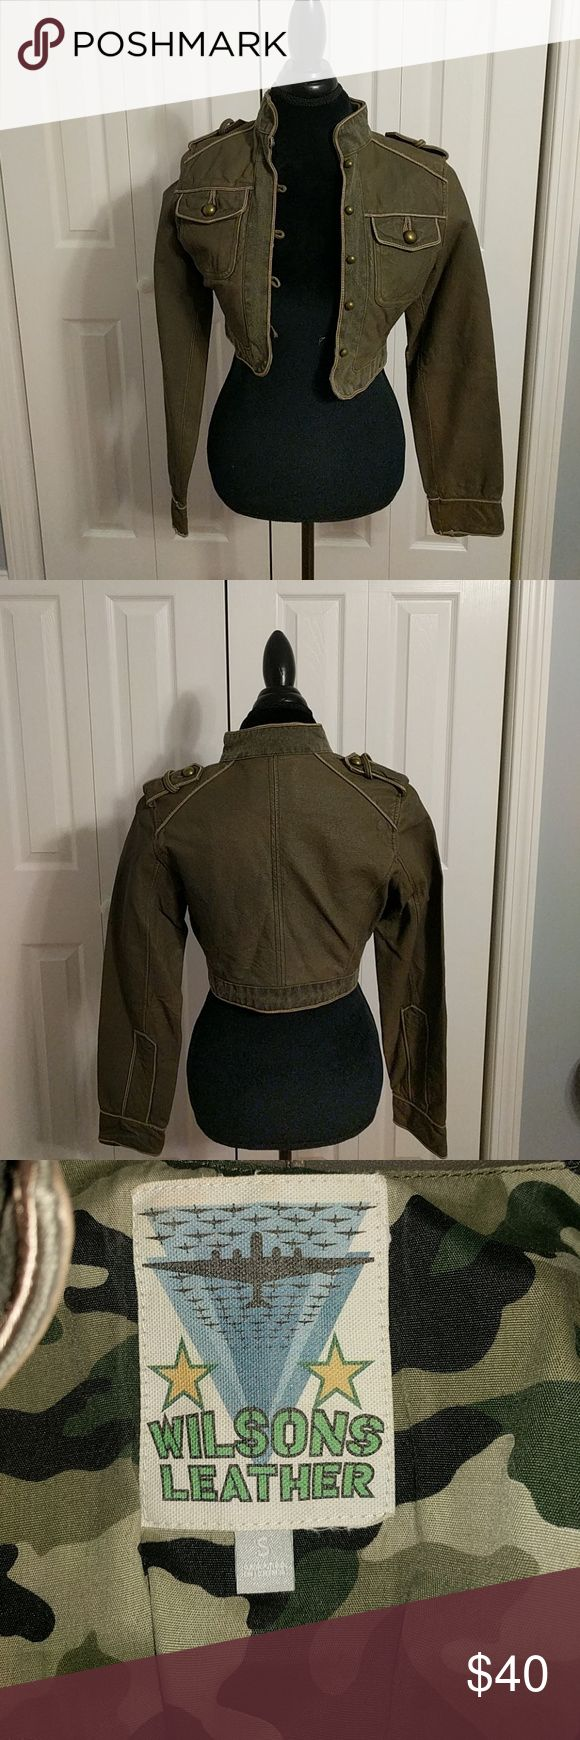 Leather Jacket Army Green leather jacket. Camo trim on the inside. Genuine leather. Worn once Wilsons Leather Jackets & Coats Blazers